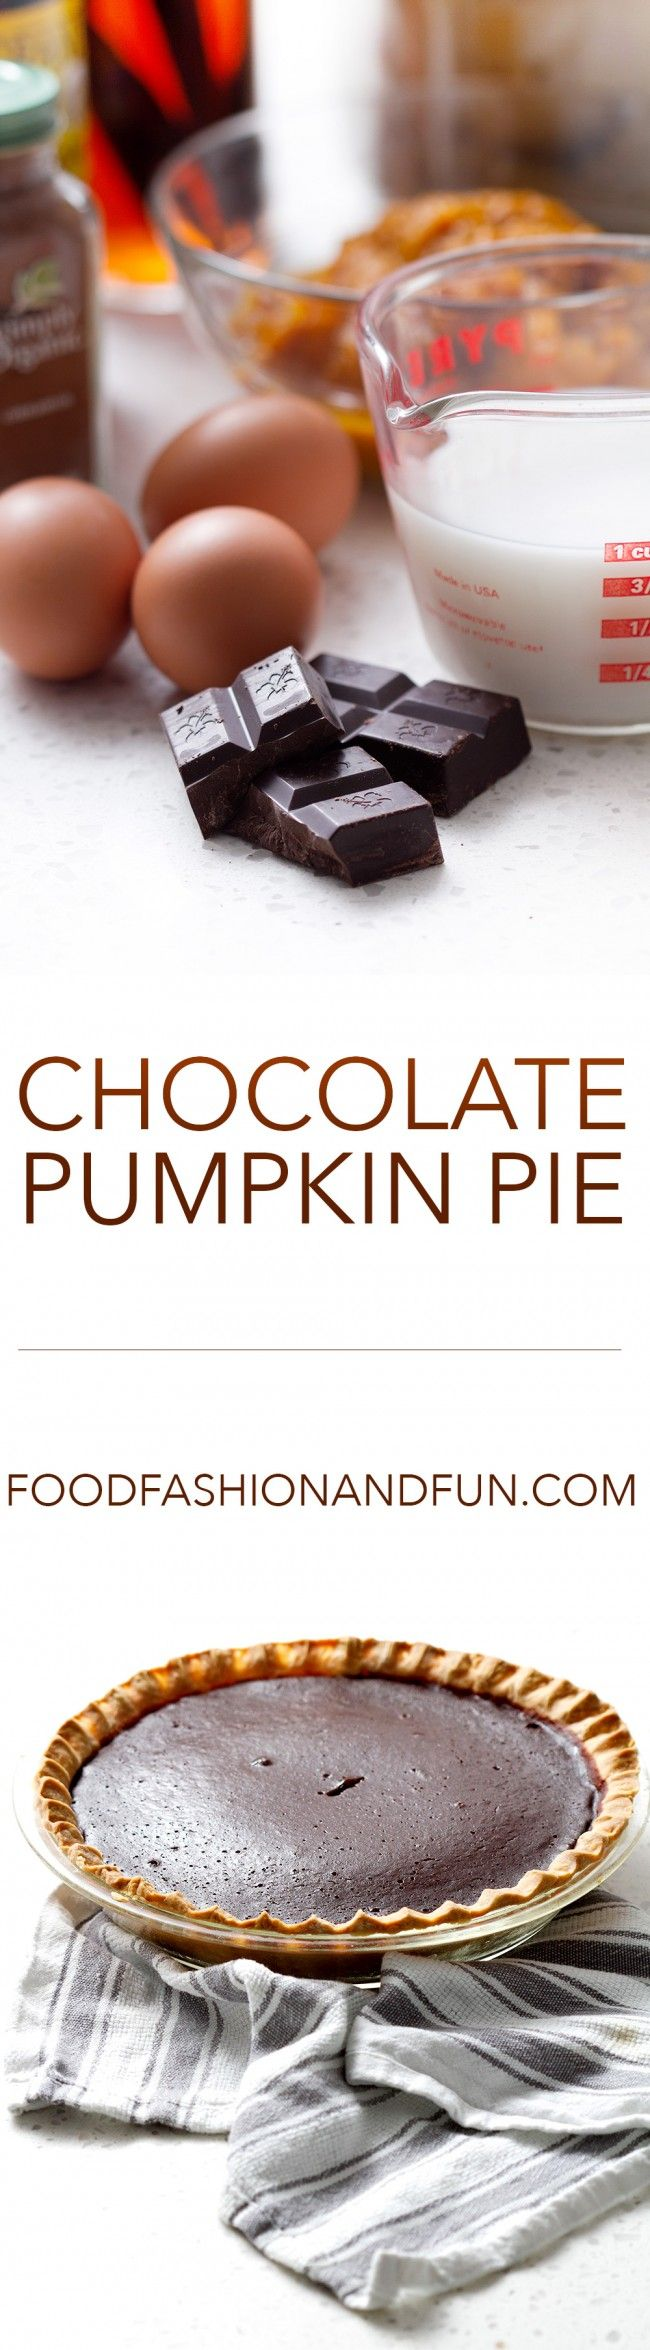 Includingchocolate is a nice variation on a traditional pumpkin pie. If you like chocolate then this will be a welcome addition to your Thanksgiving or holiday meal. The chocolate makes this pie s…